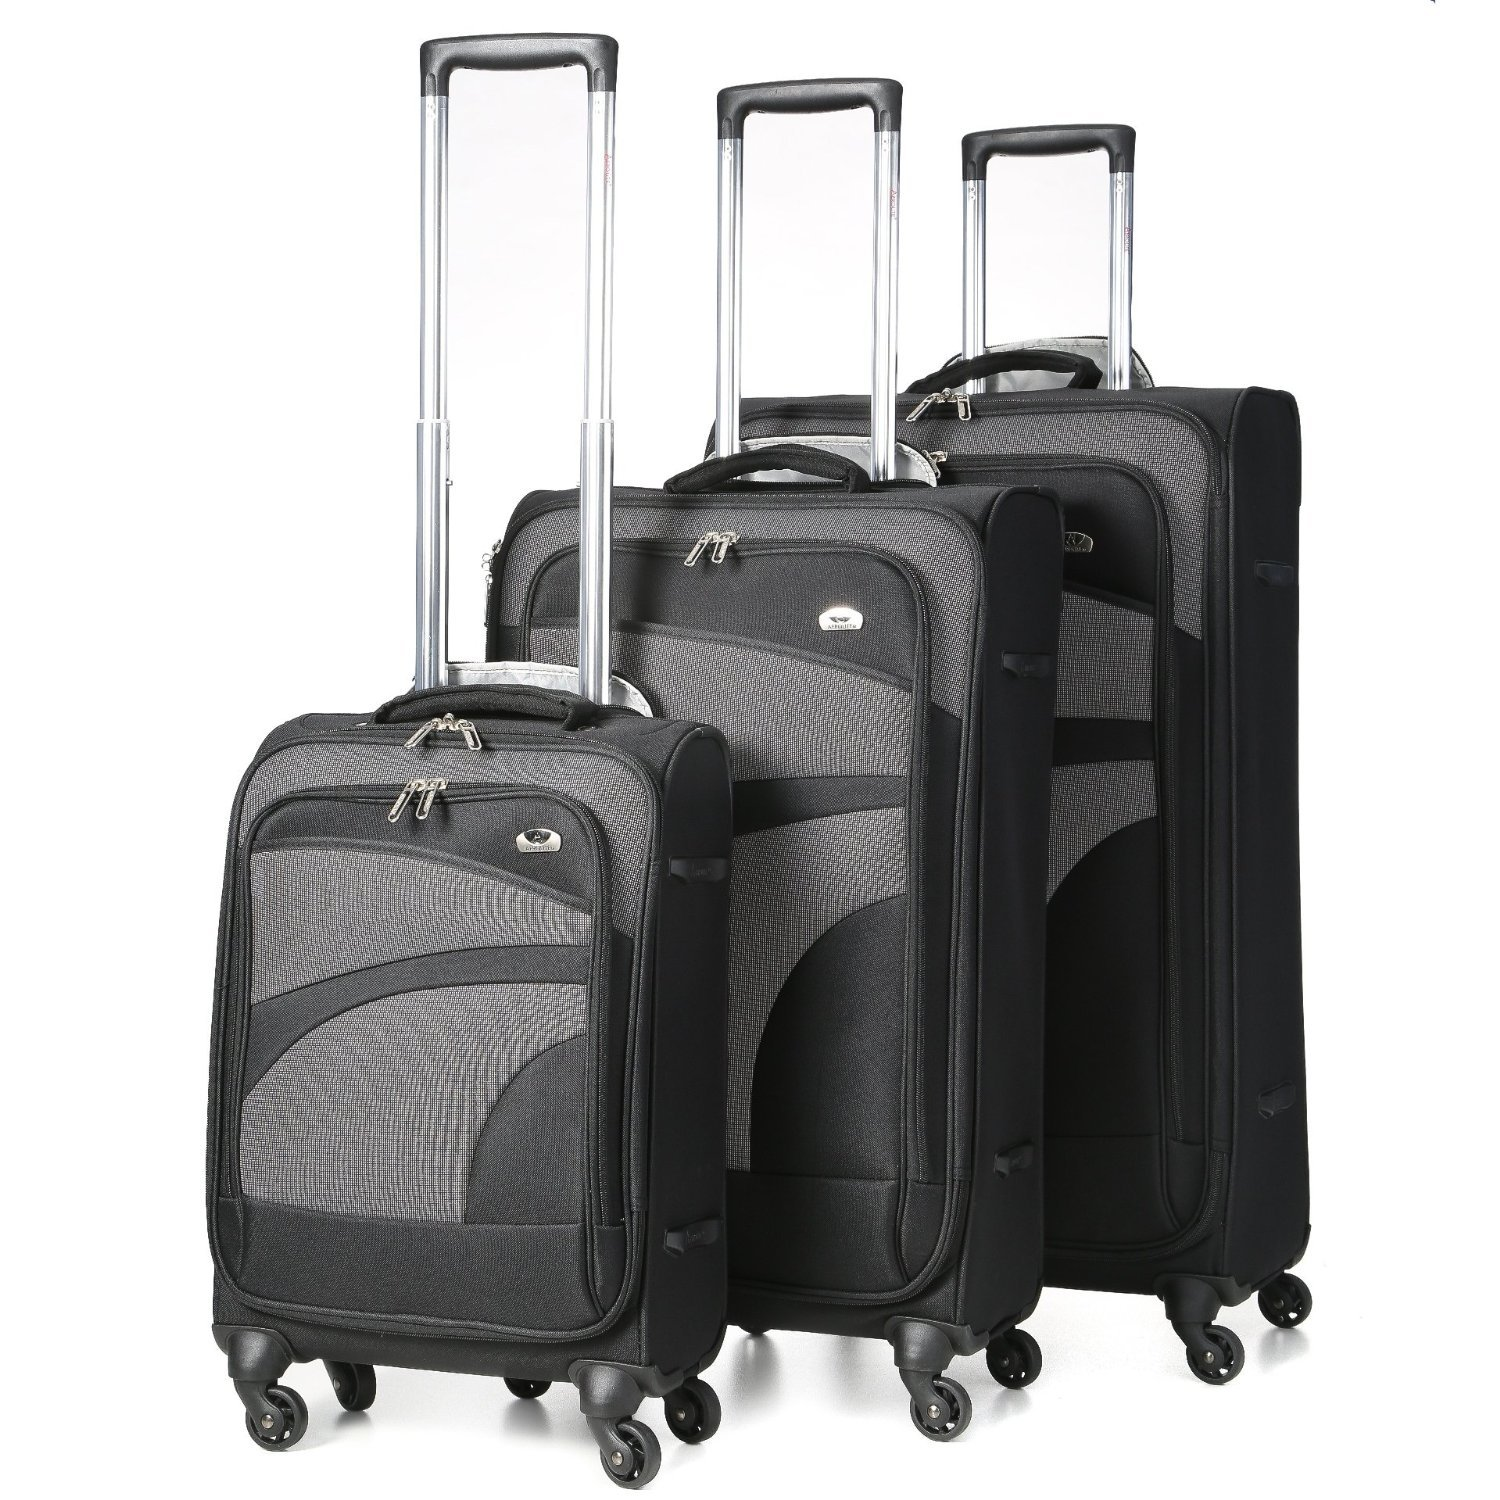 Aerolite Super Lightweight 4 Wheel Spinner Luggage Suitcase